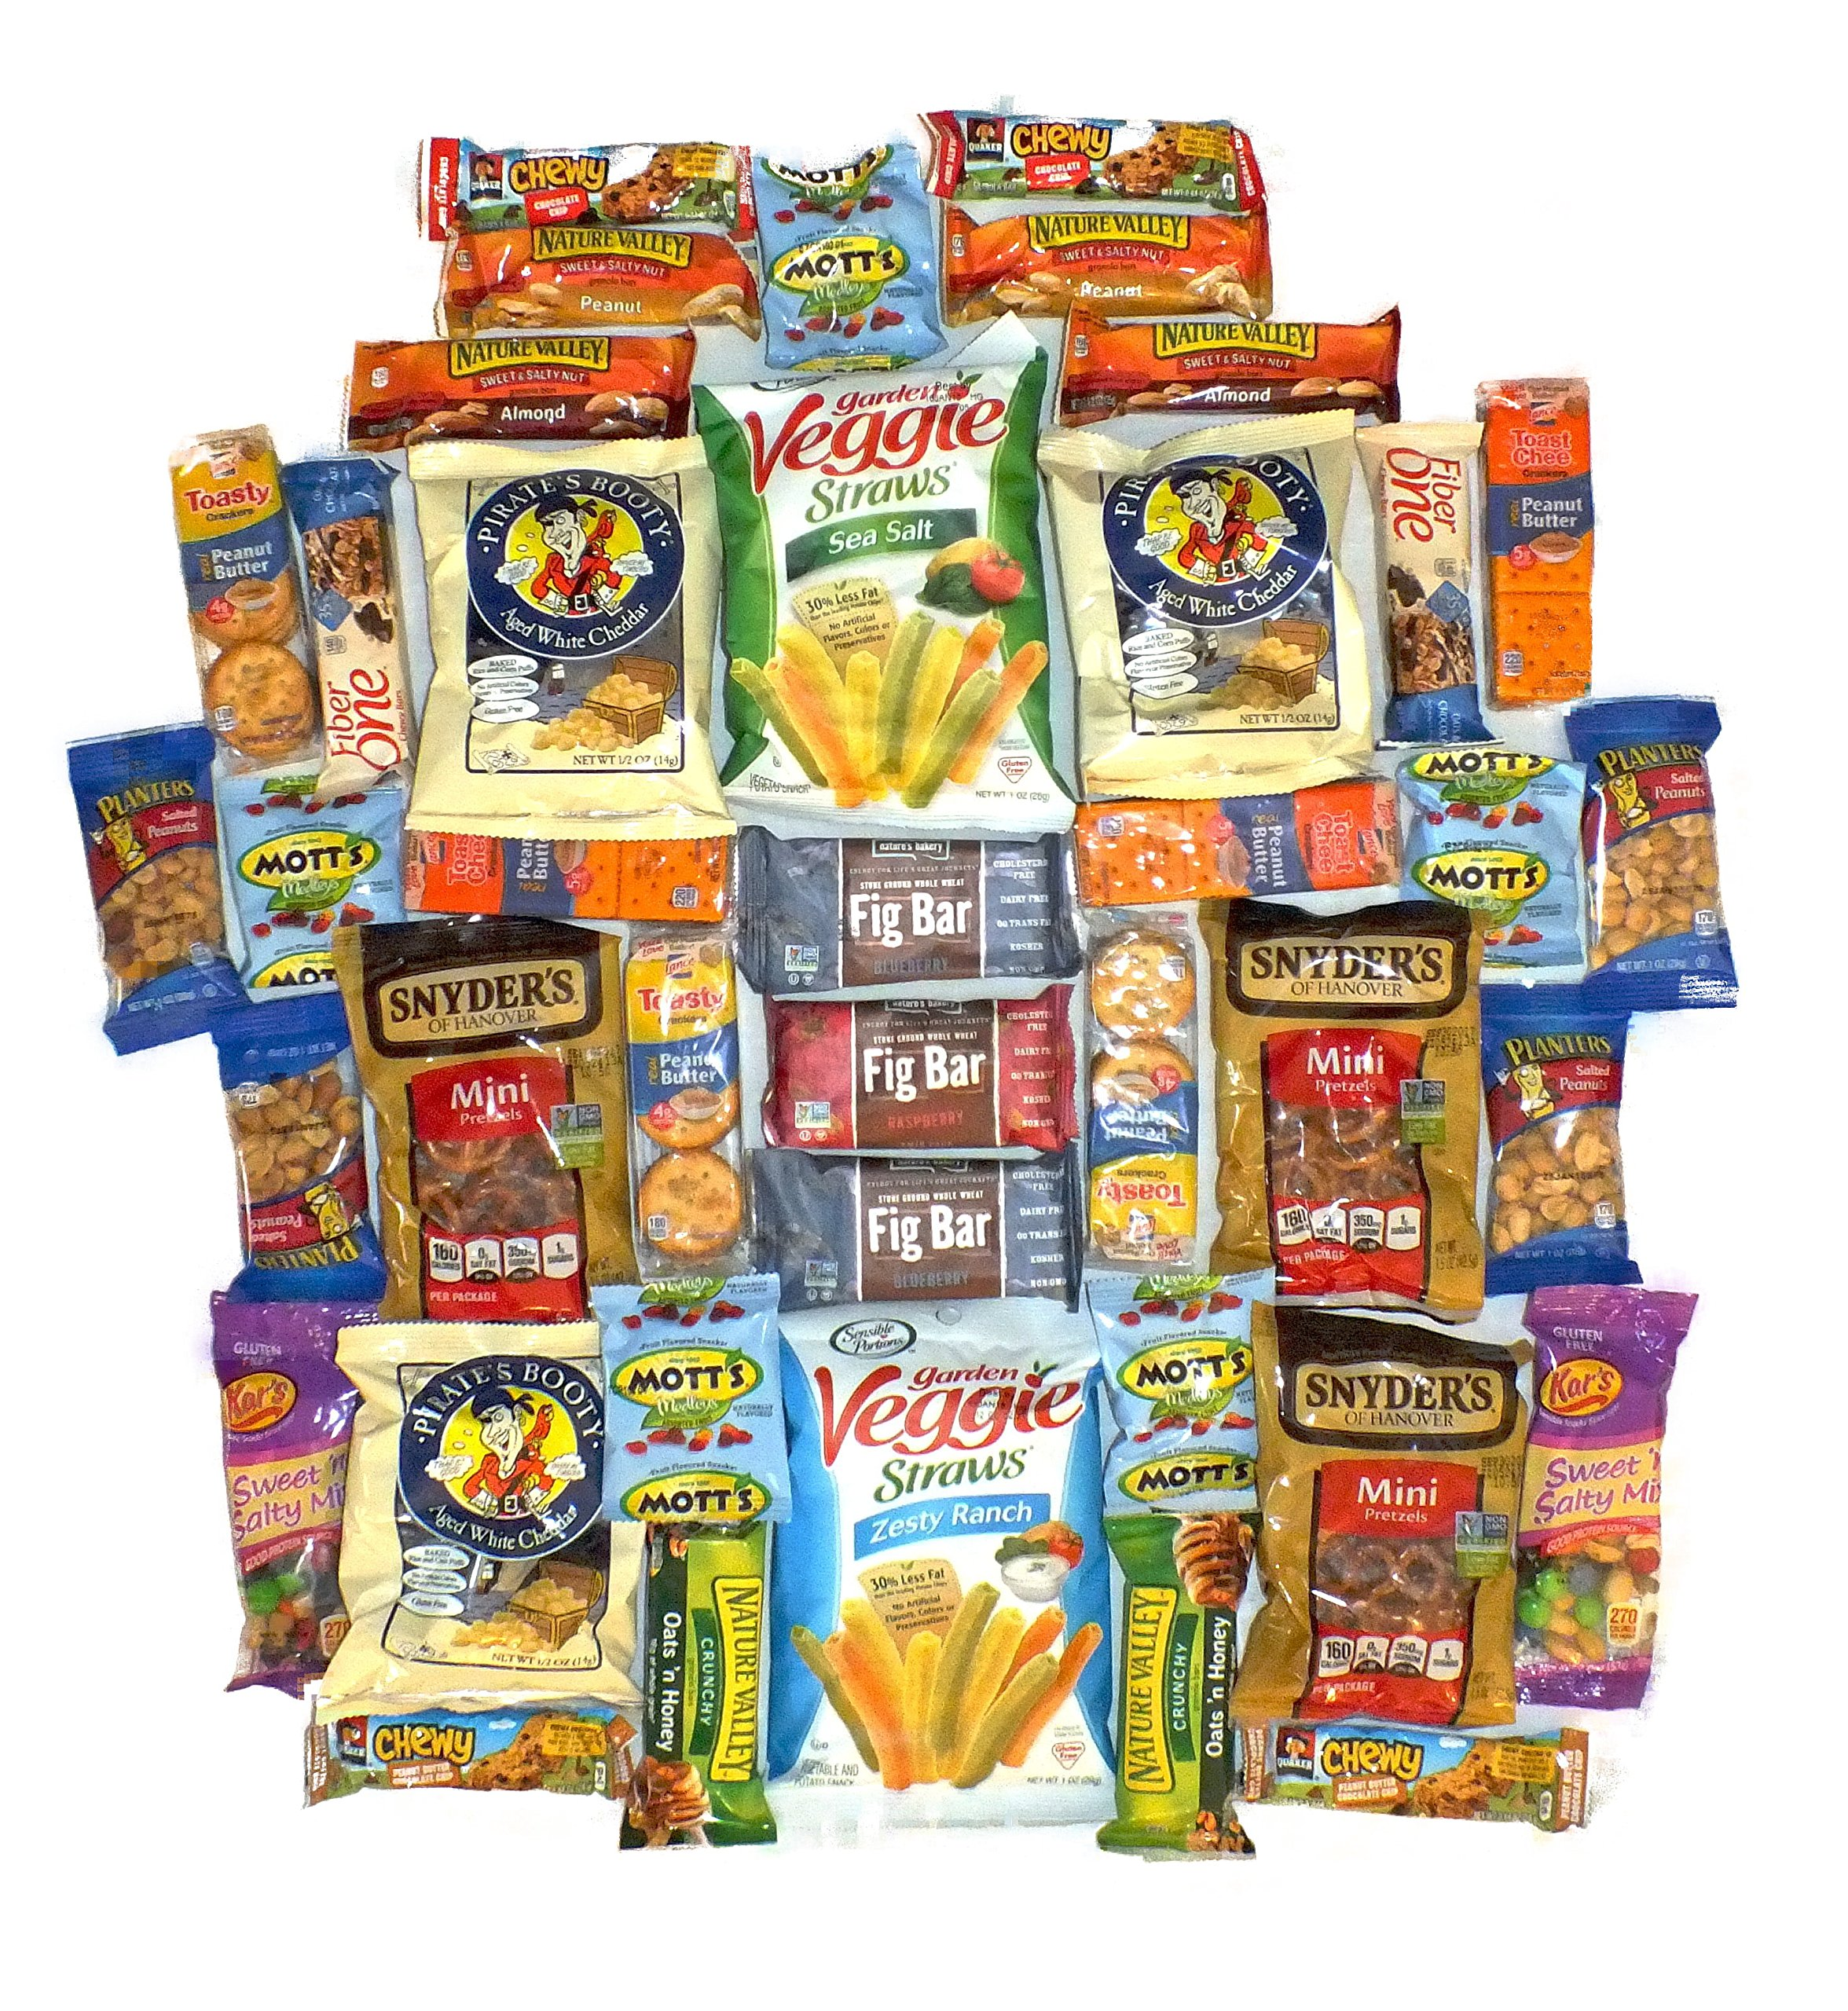 Healthy Snack Pack Variety Assortment Care Package Natural Bulk Sampler Bars Snacks (40 Count)